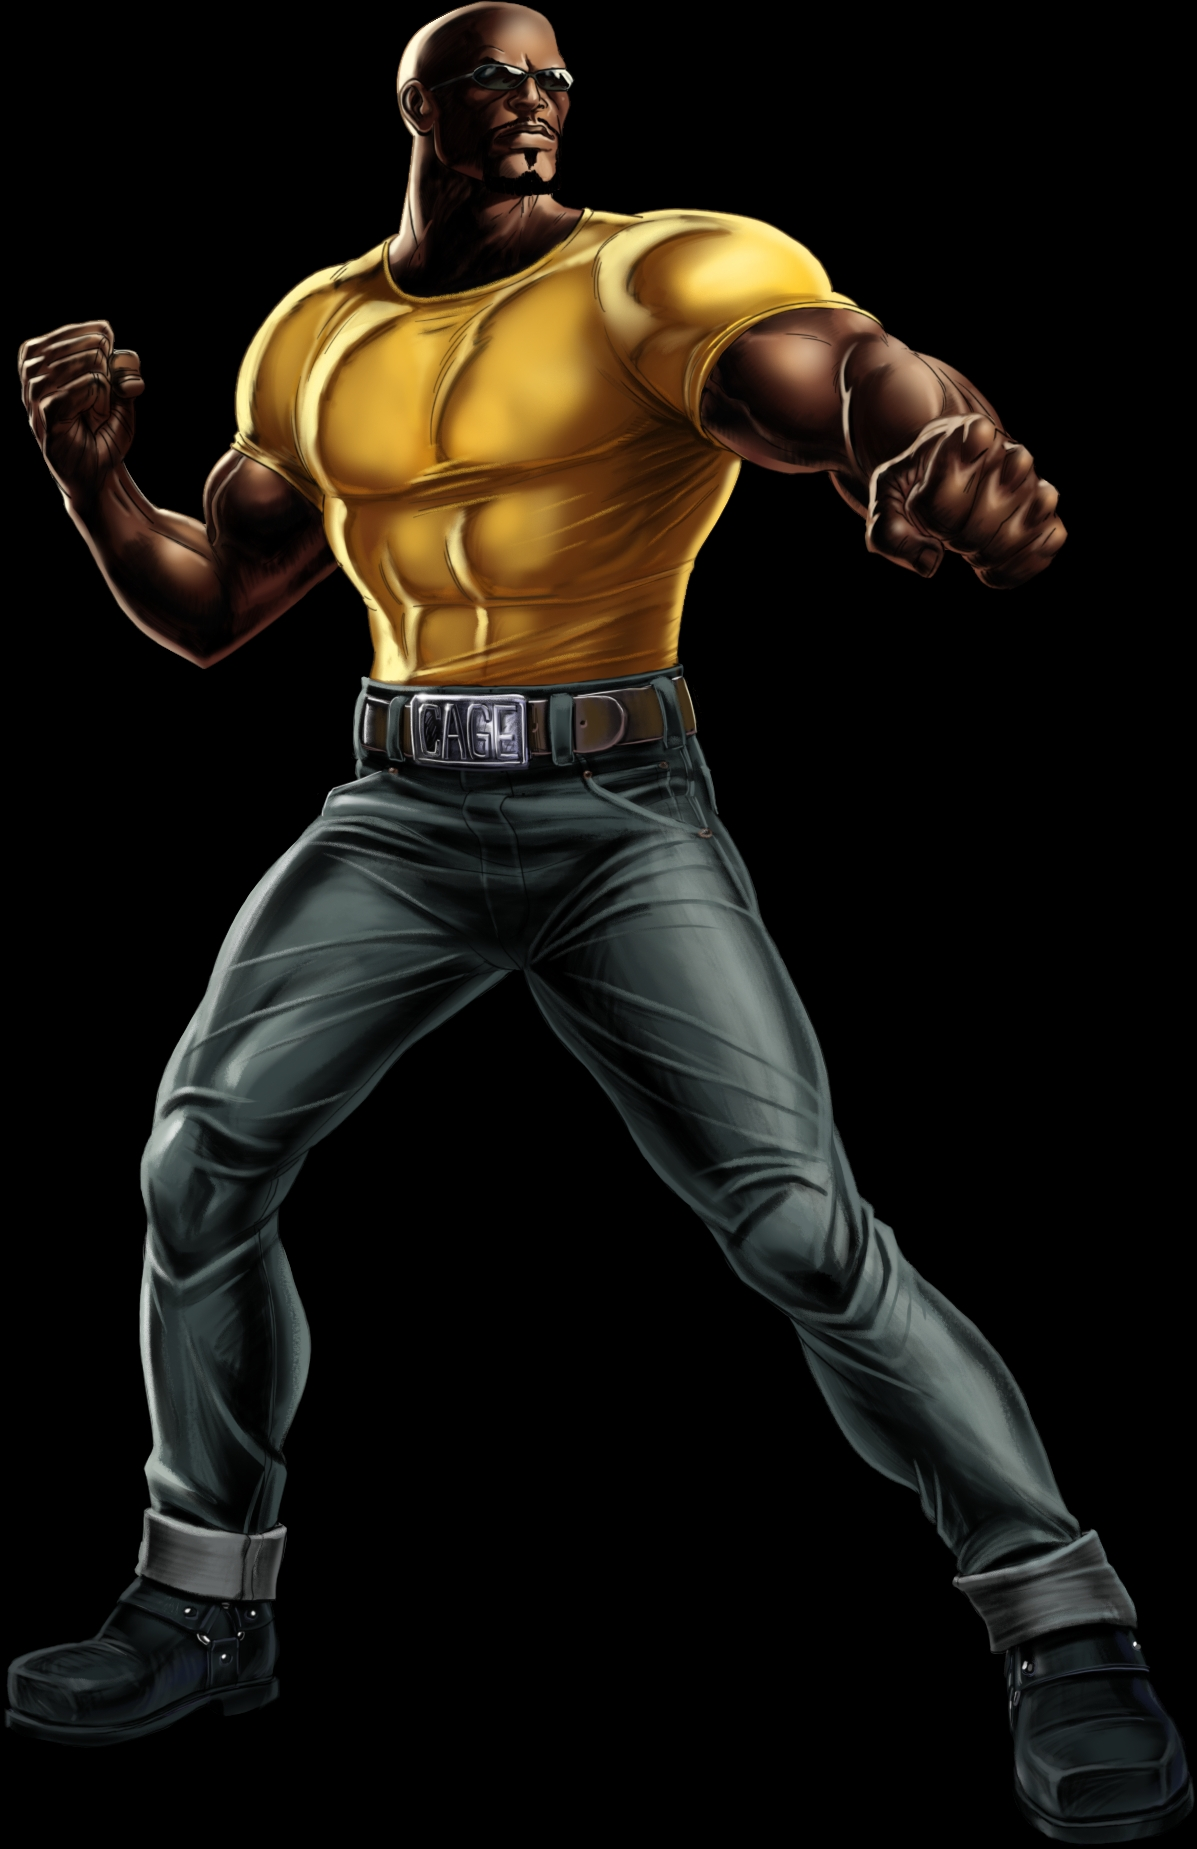 luke cage hd marvel wallpaper